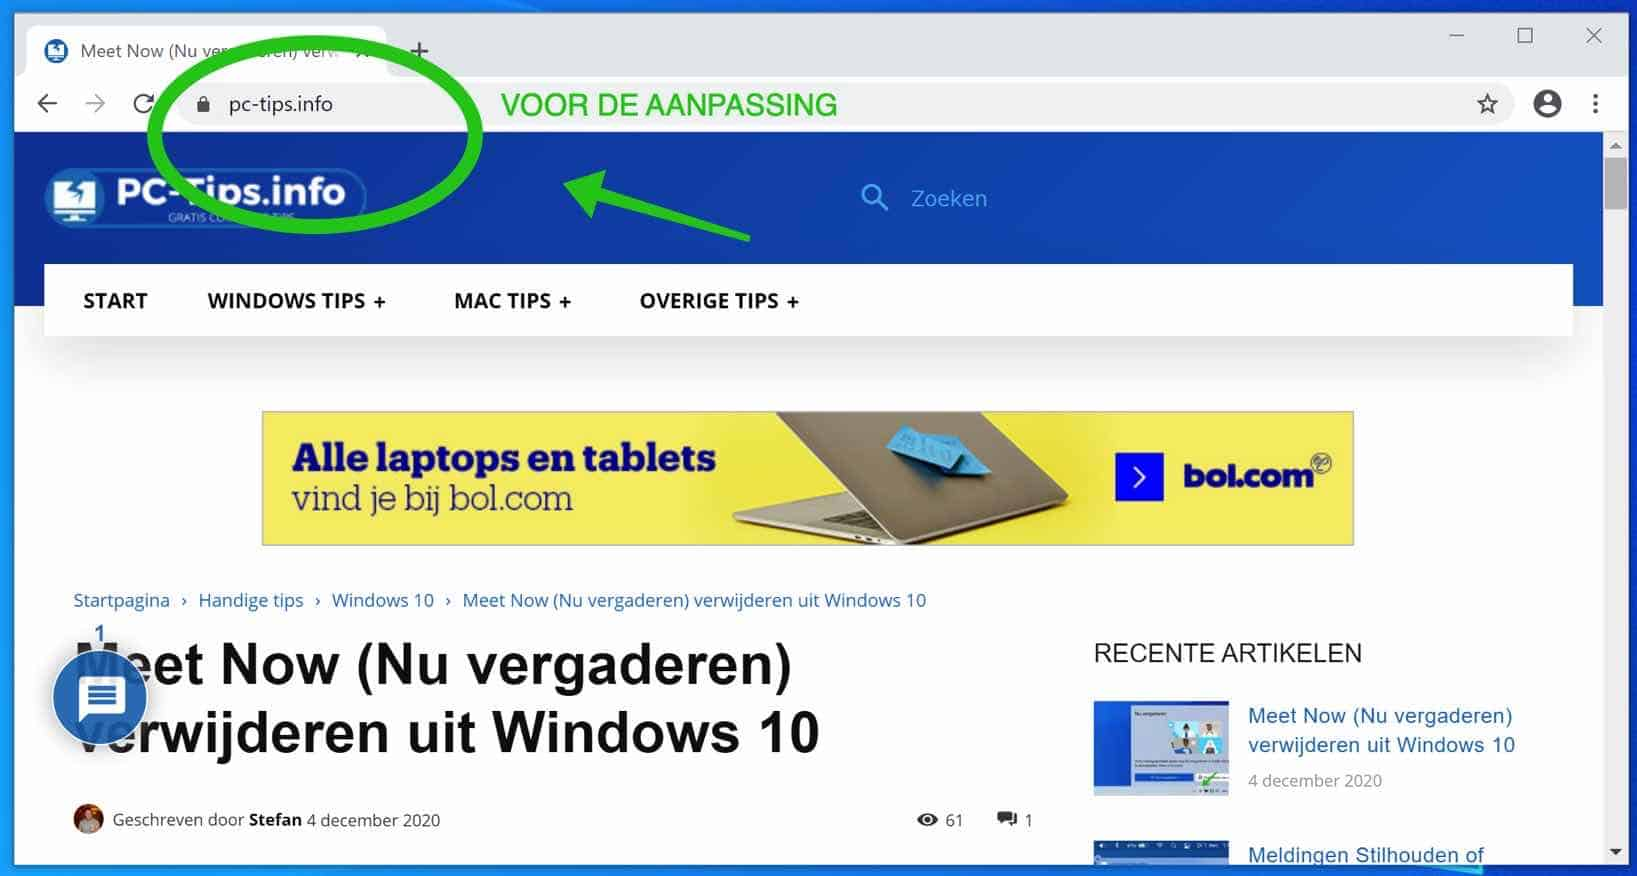 hele website adres weergeven in google chrome